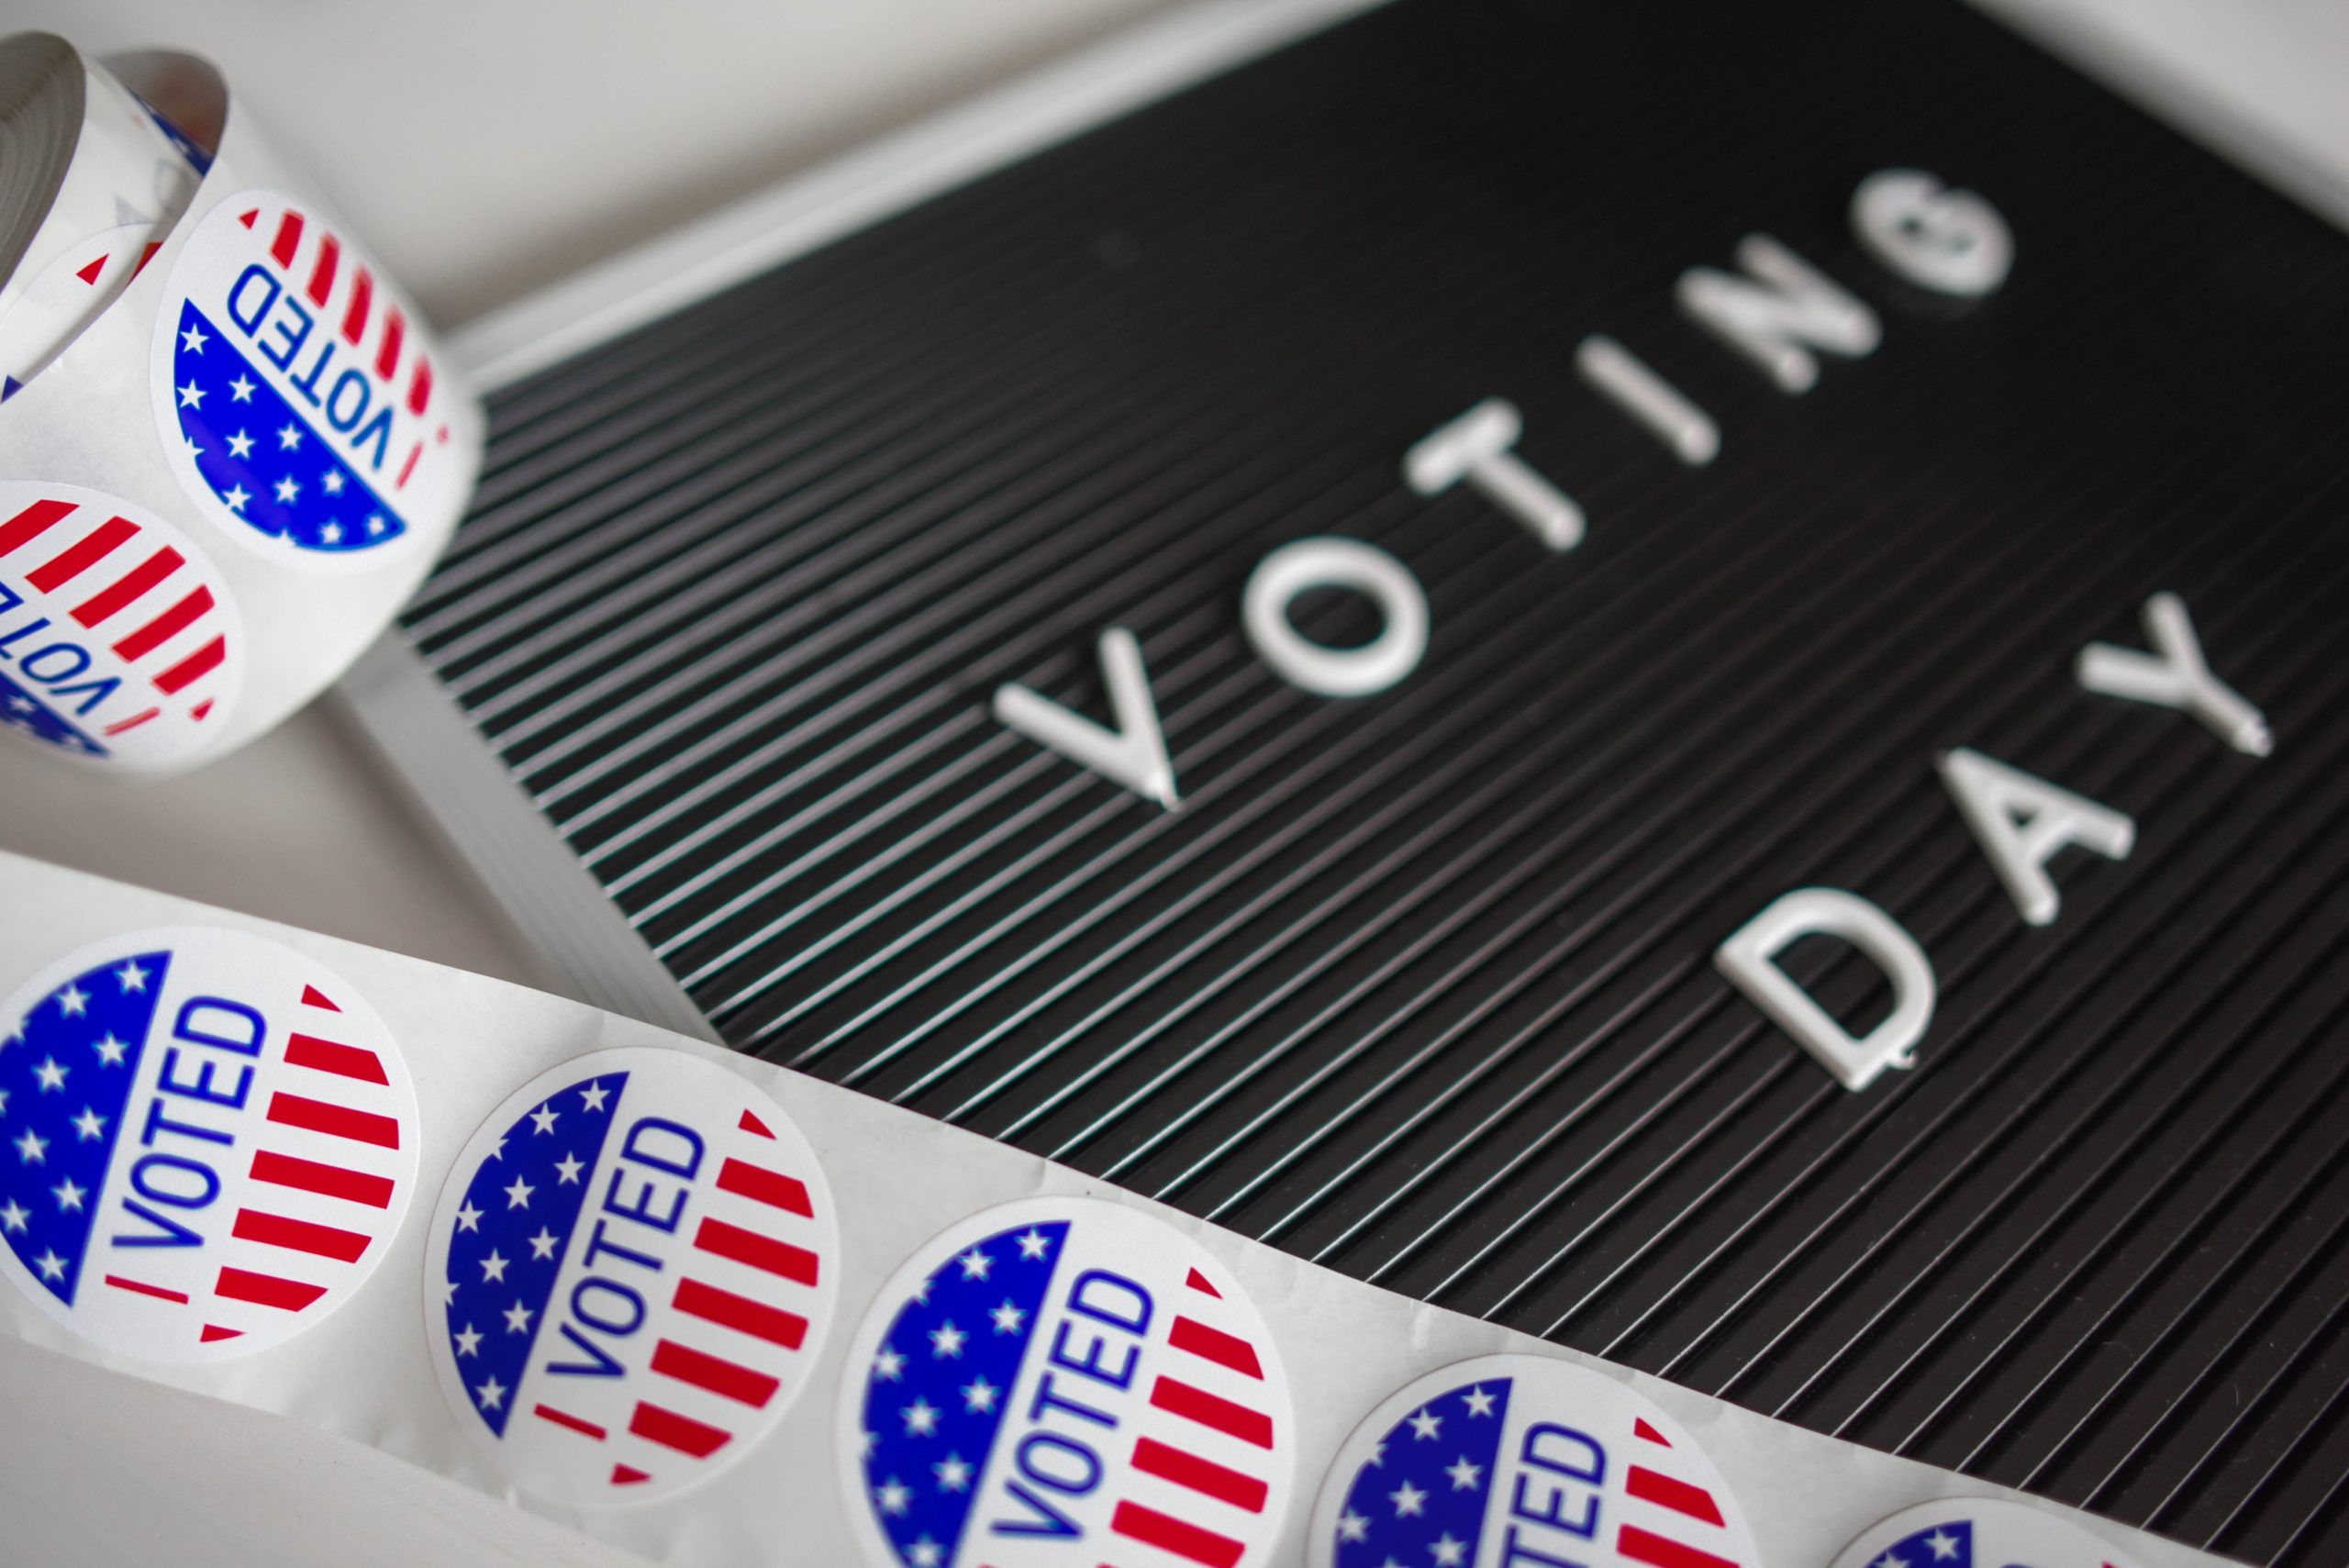 Letterboard spelling out the words Voting Day, along with stickers that say I voted